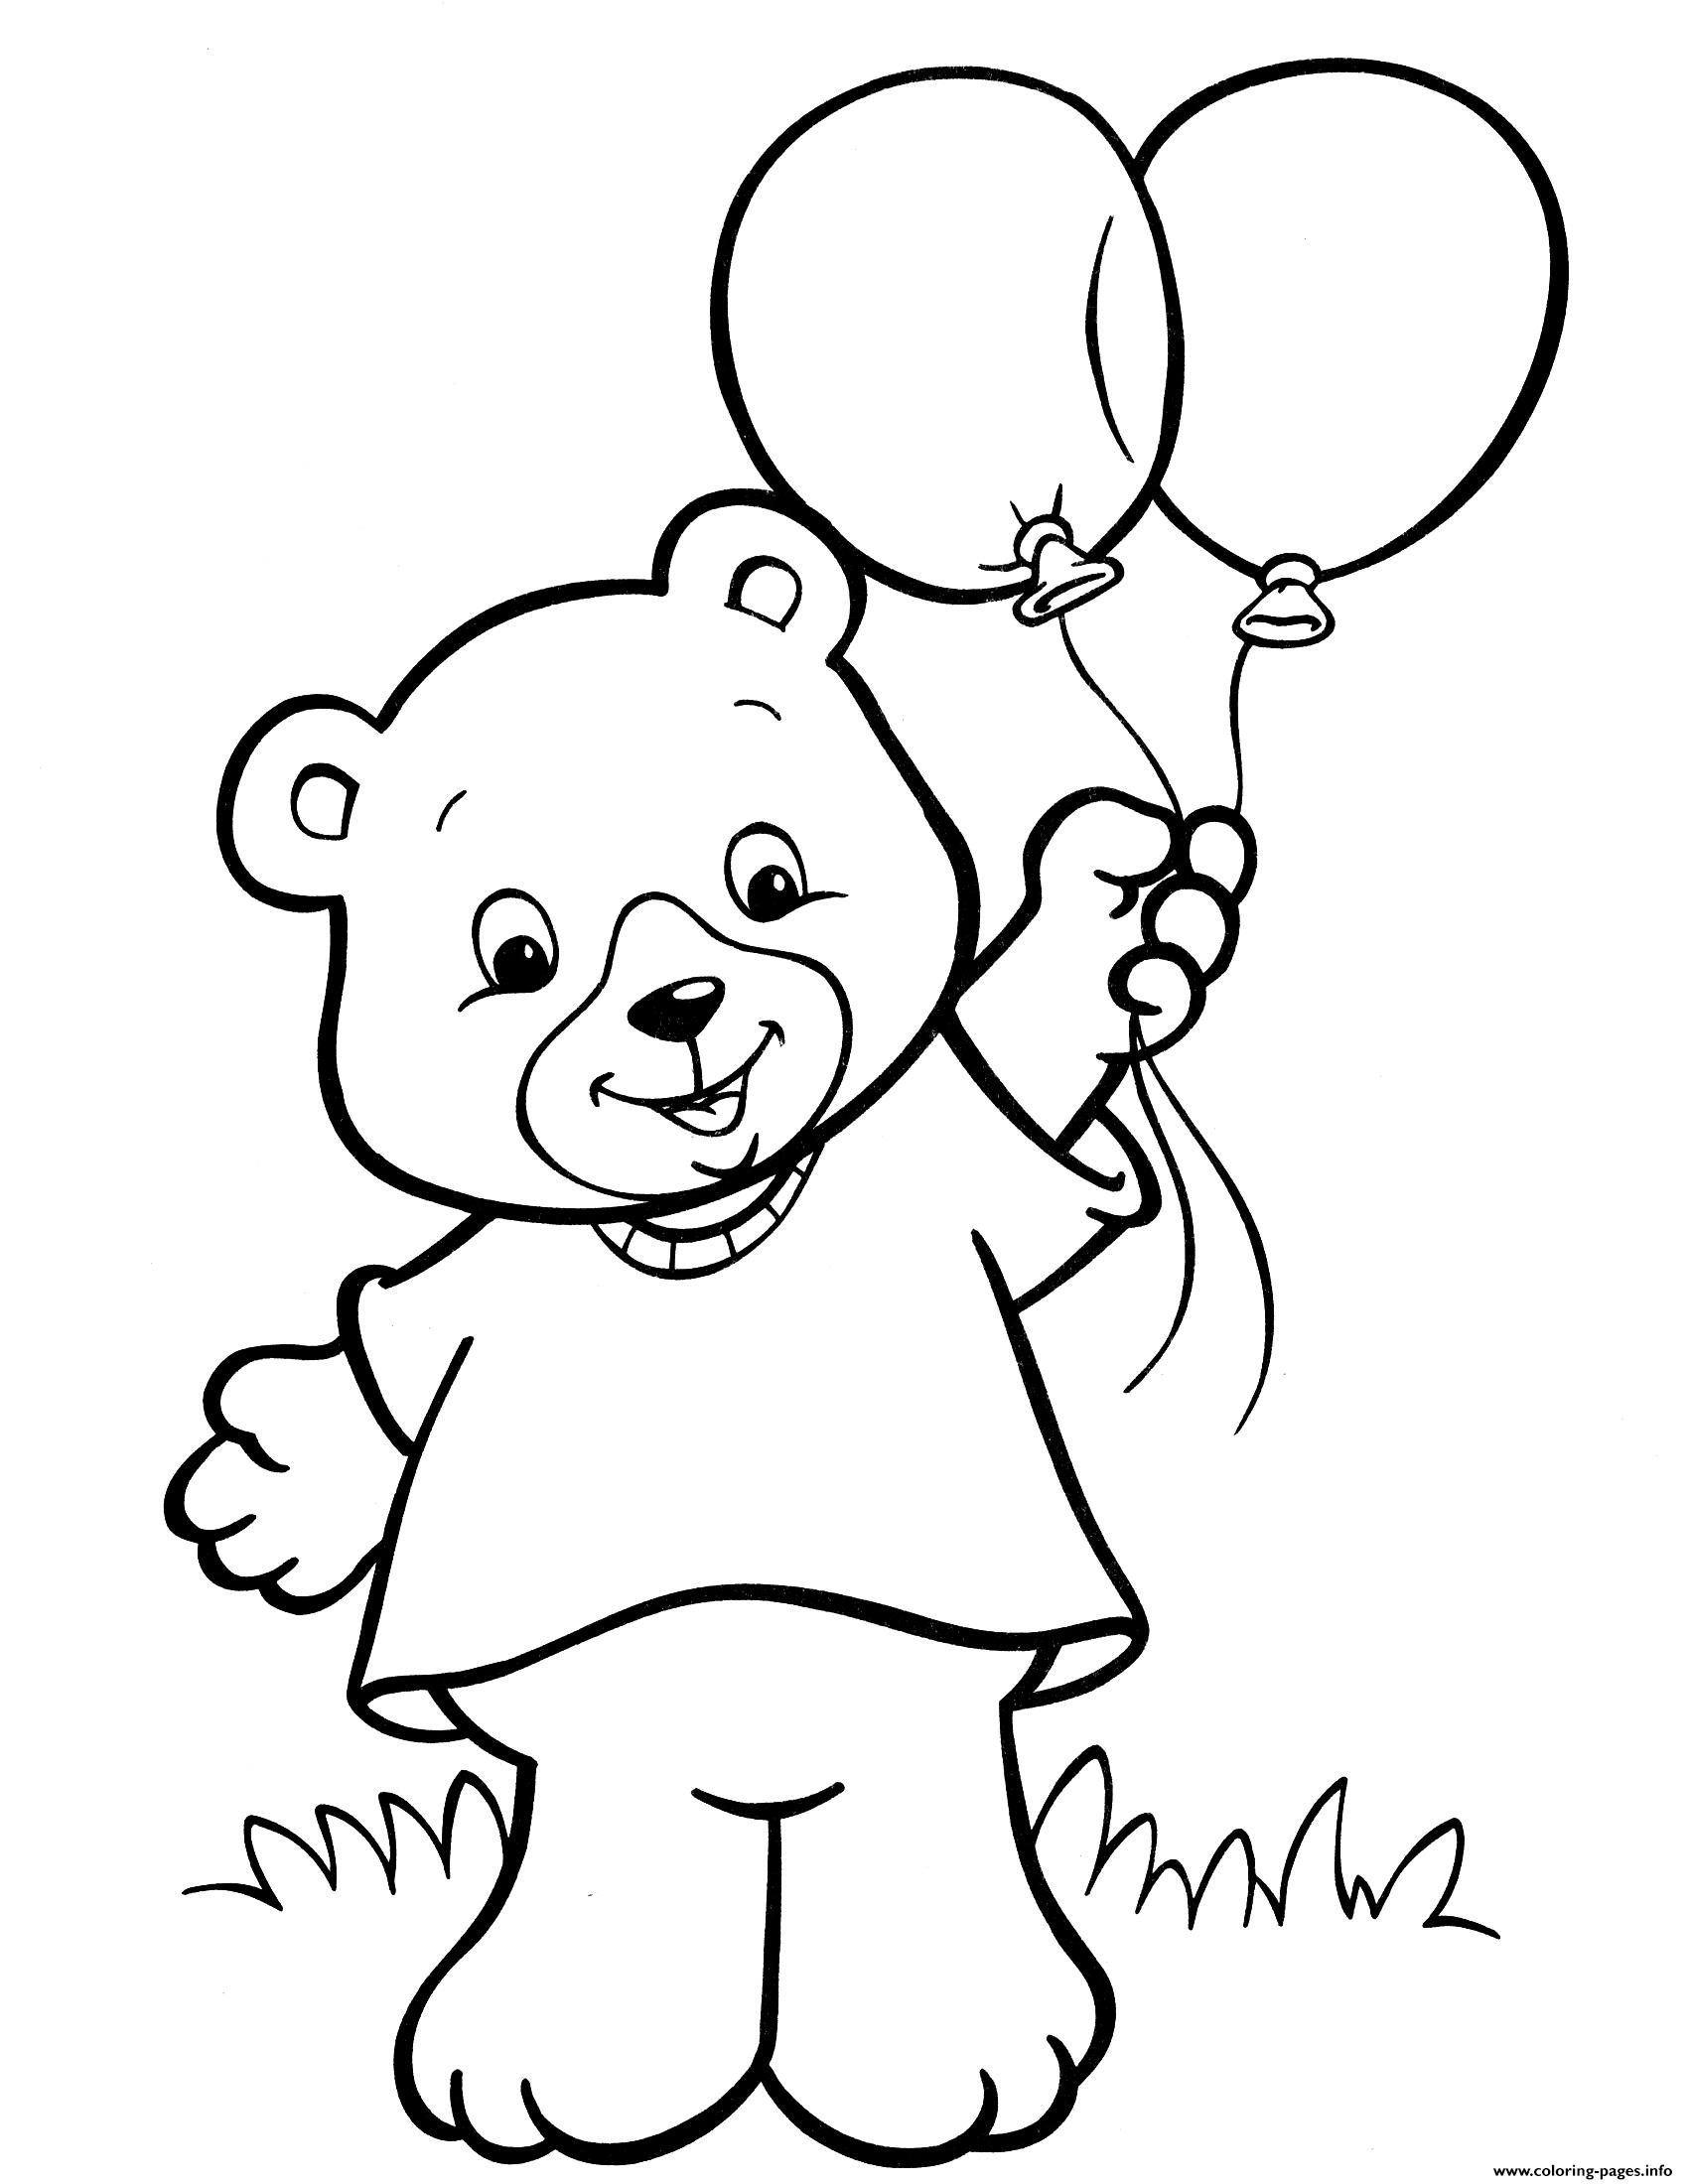 Crayola Teddy Bear Balloon Coloring Pages Printable